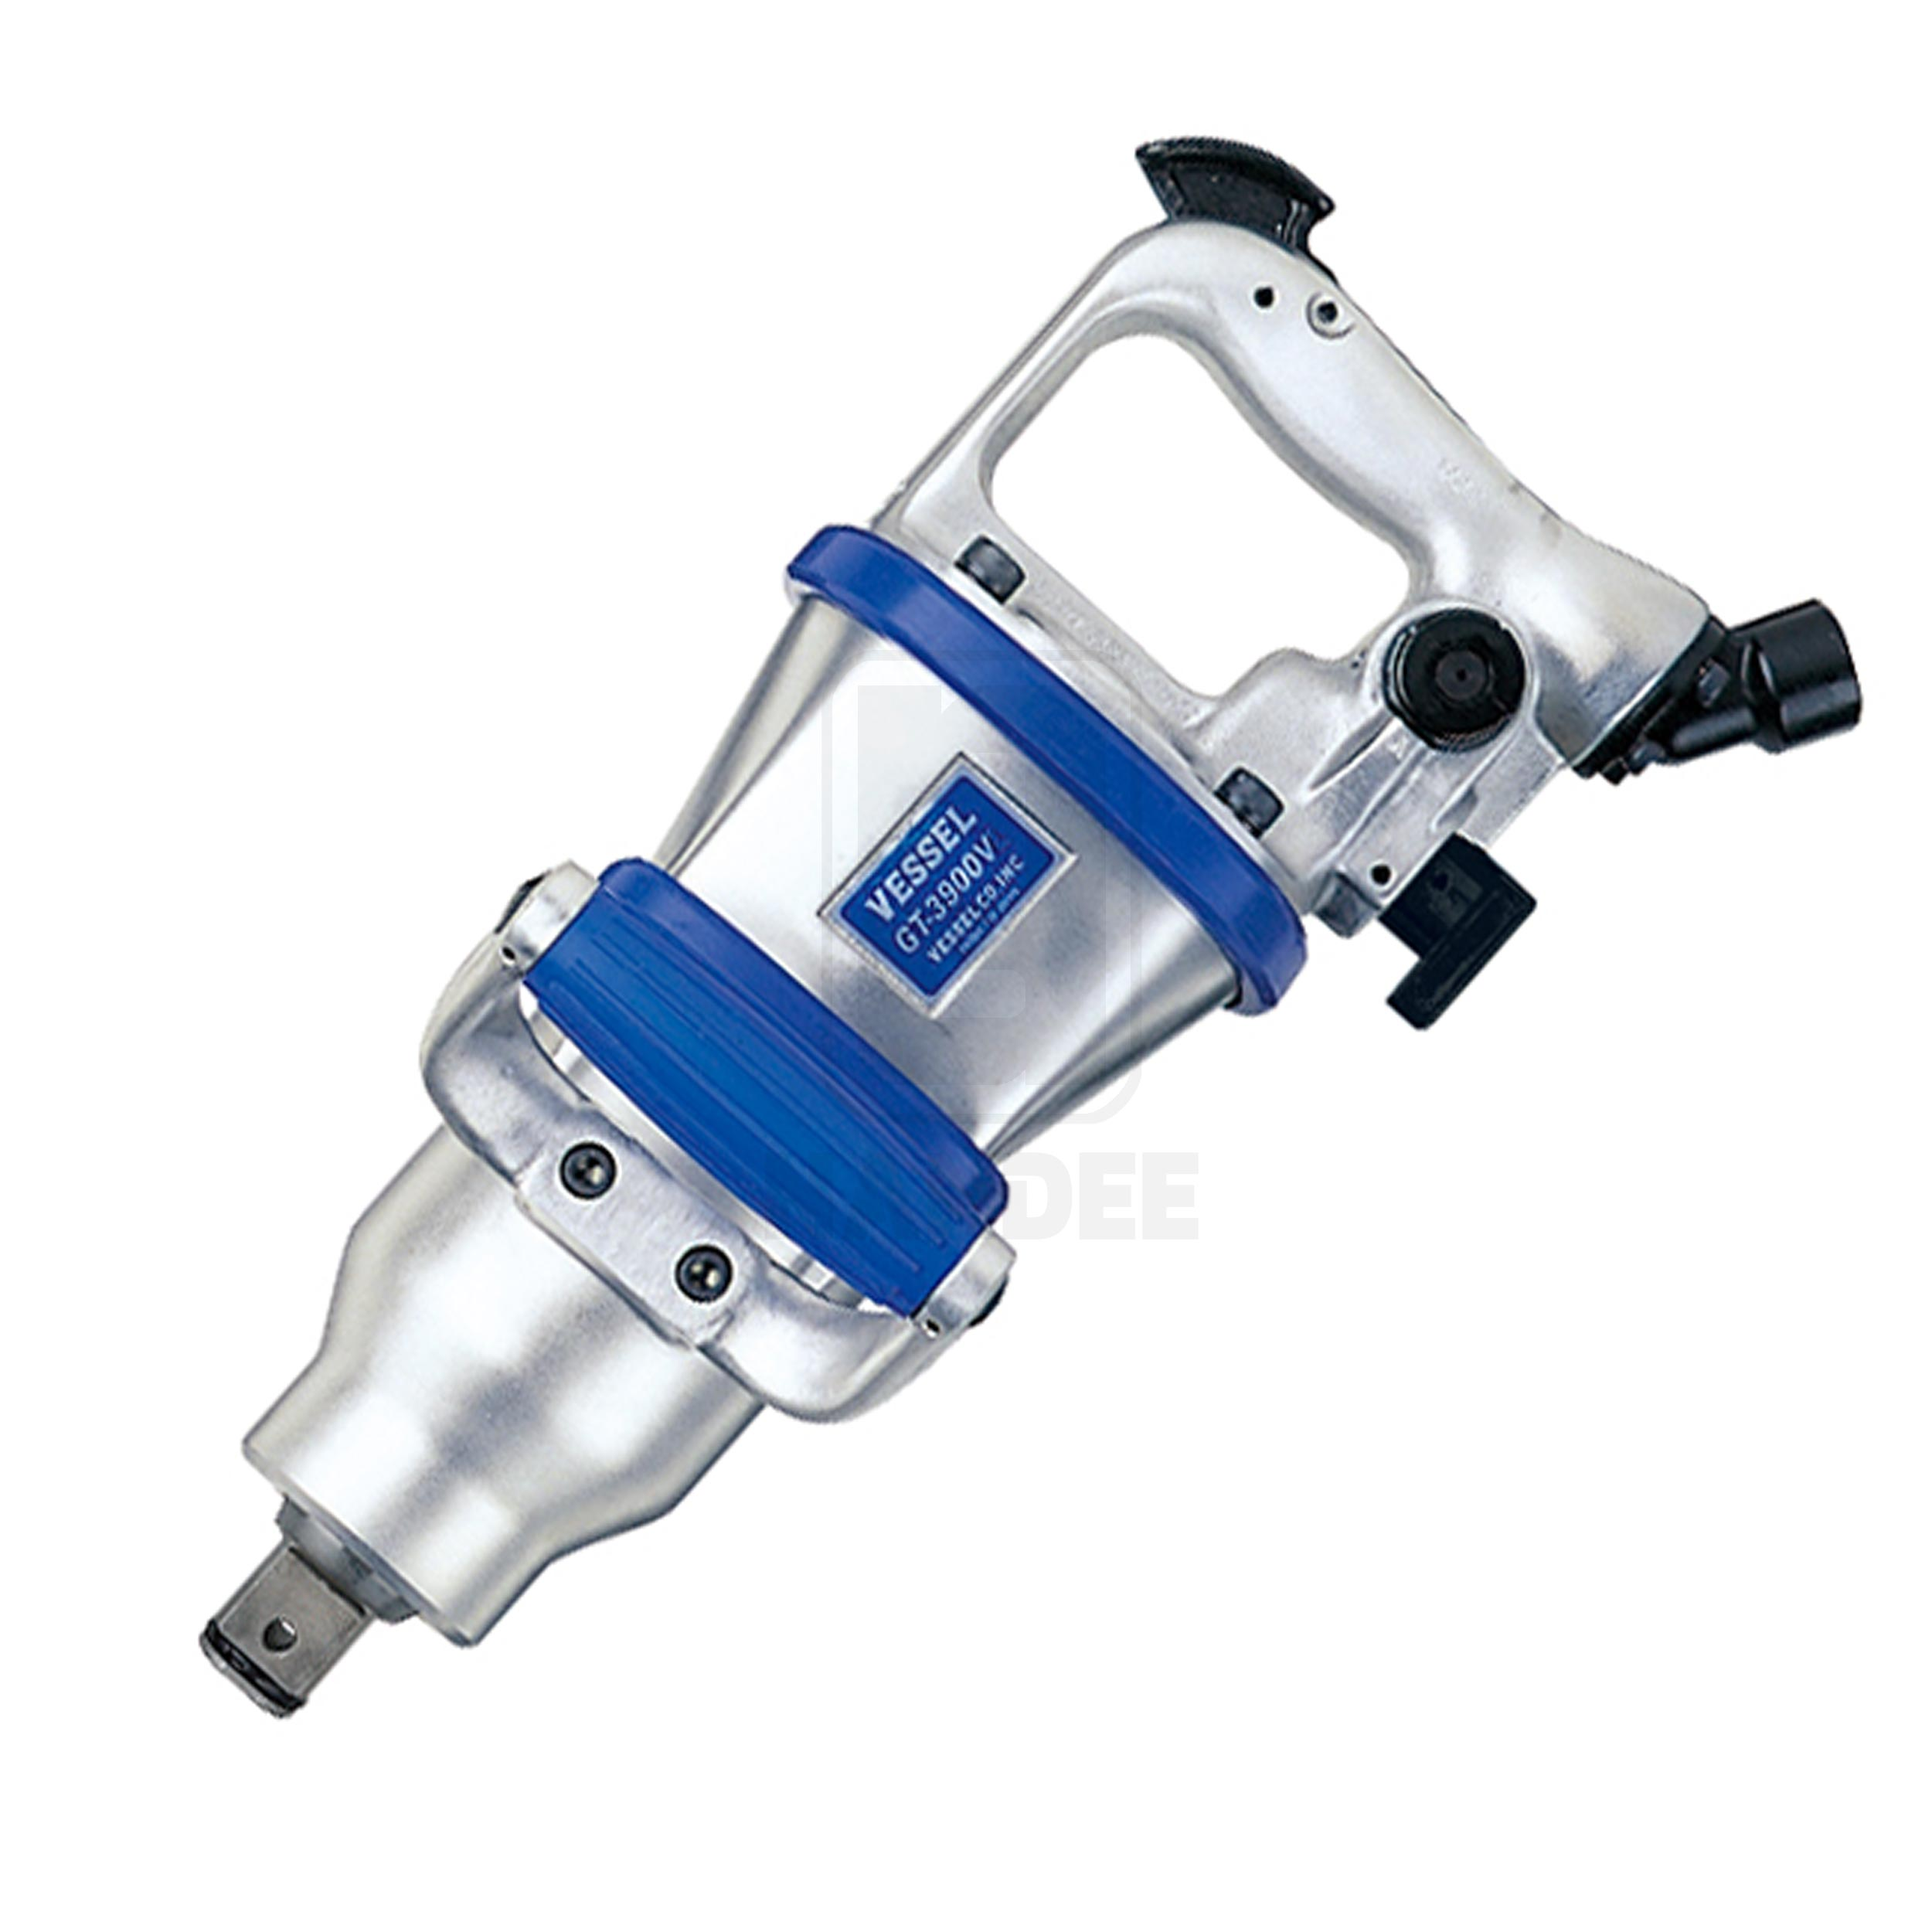 บล็อคลม super light v-hammer GT-3900V